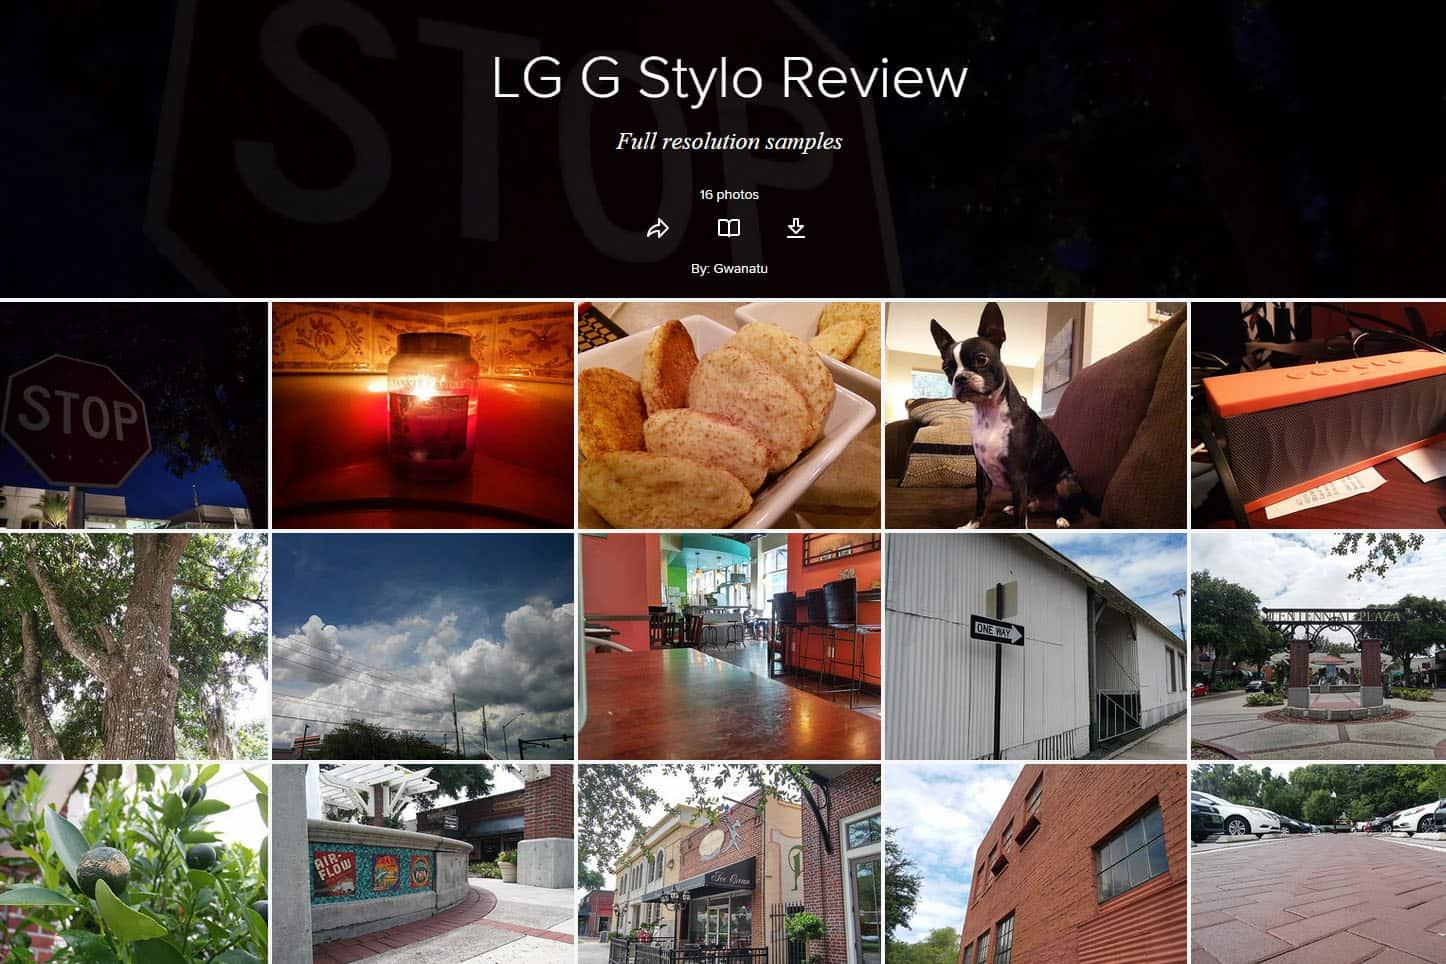 lg-g-stylo-review-pictures-flickr